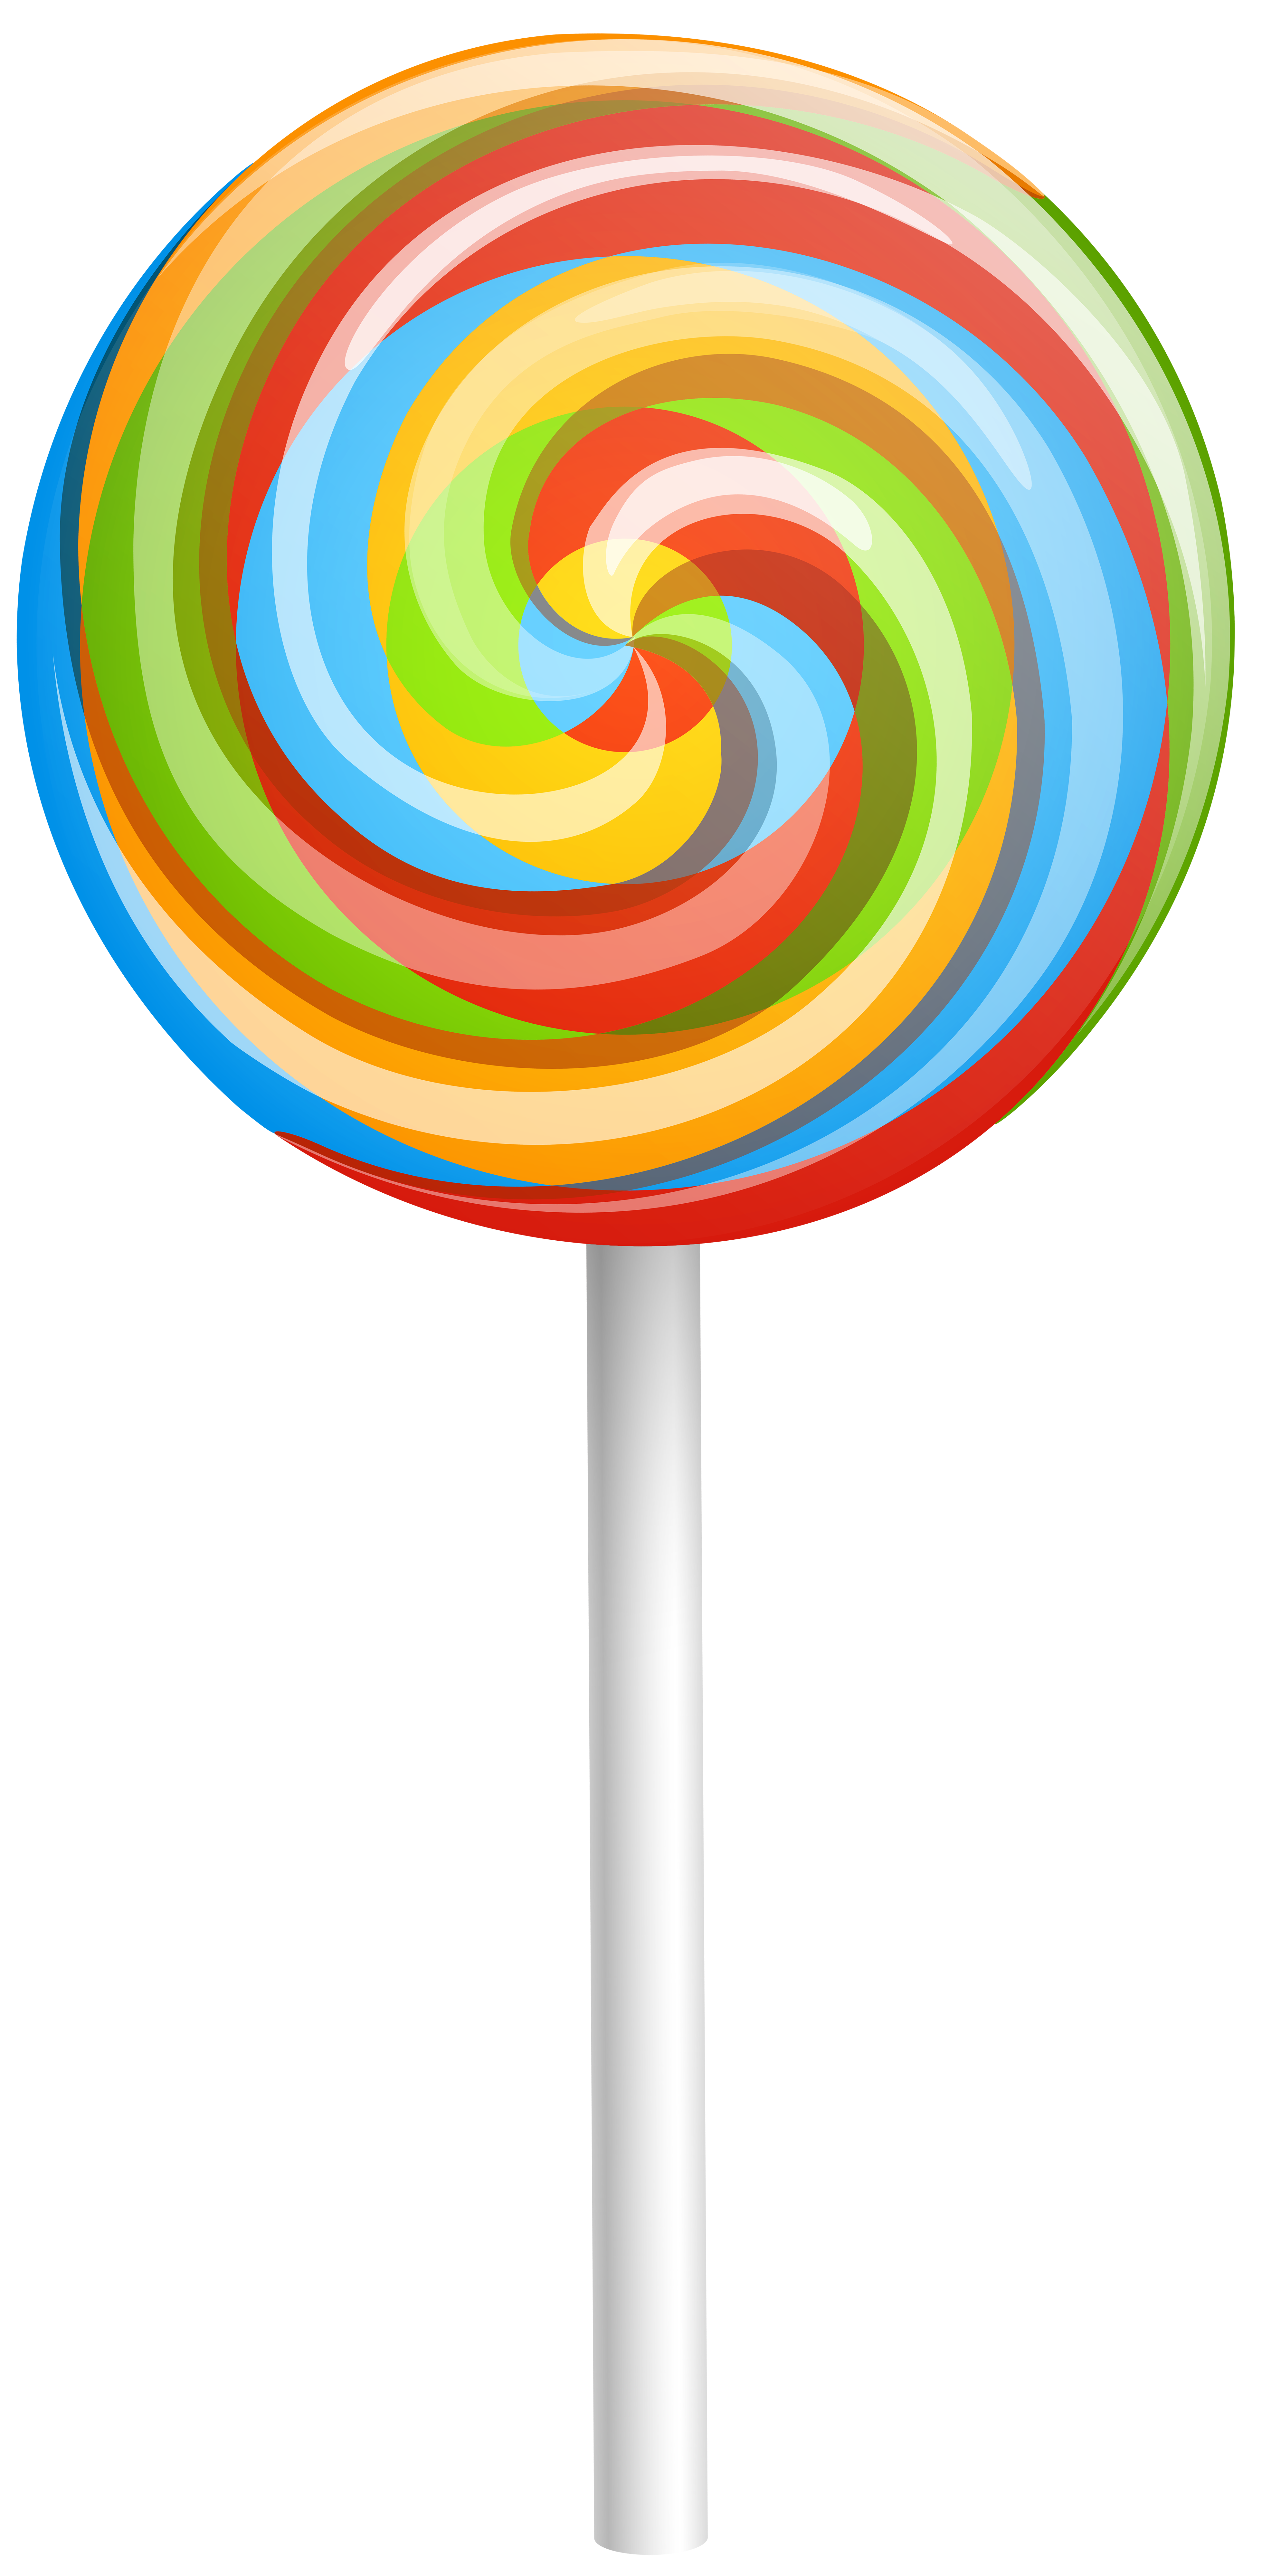 Wet clipart toothbrush. Swirl candy cliparts free